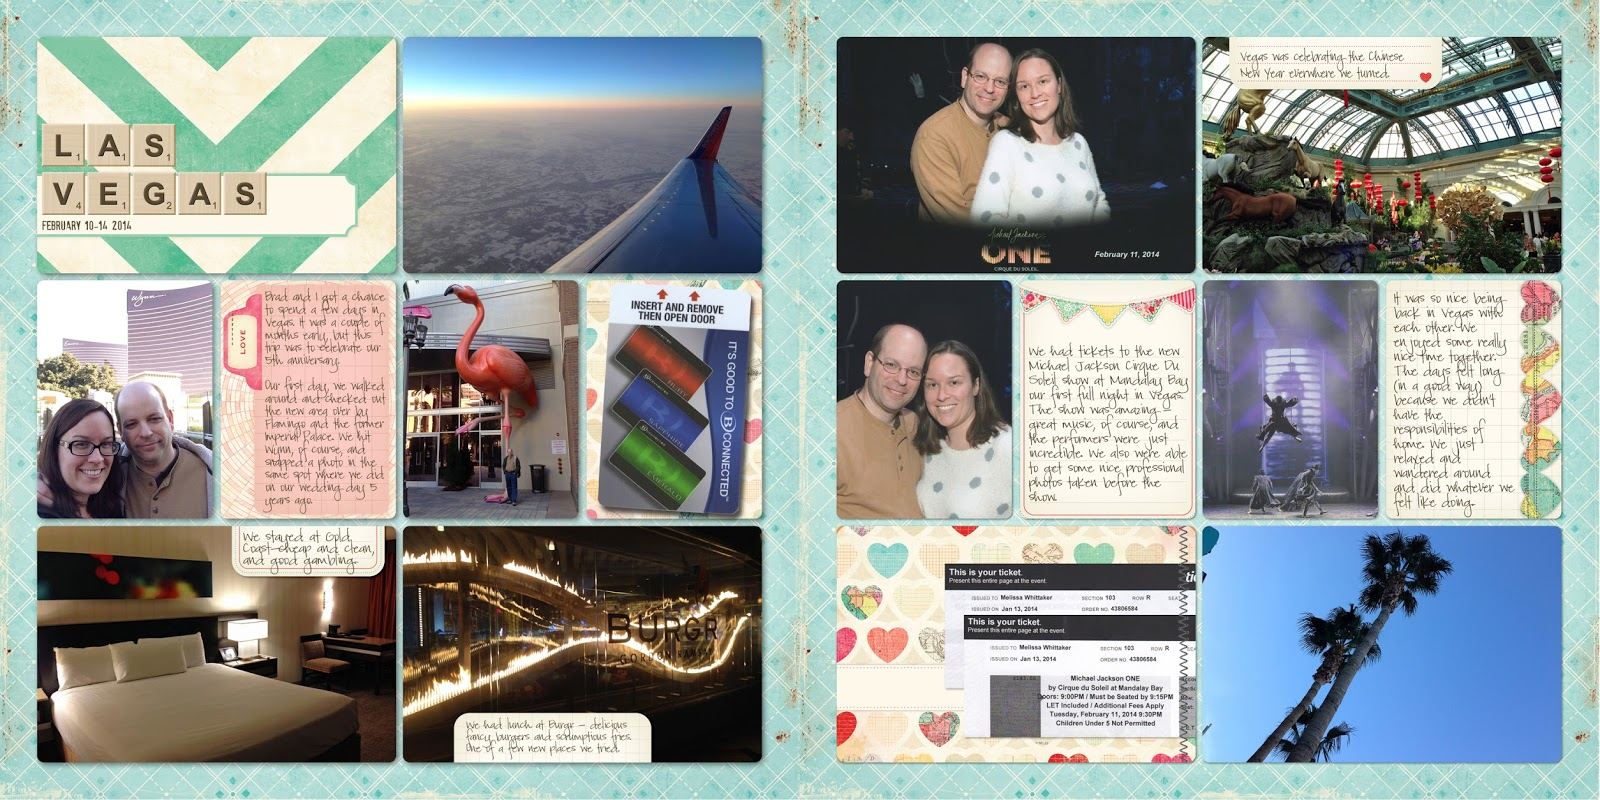 Las vegas scrapbook ideas